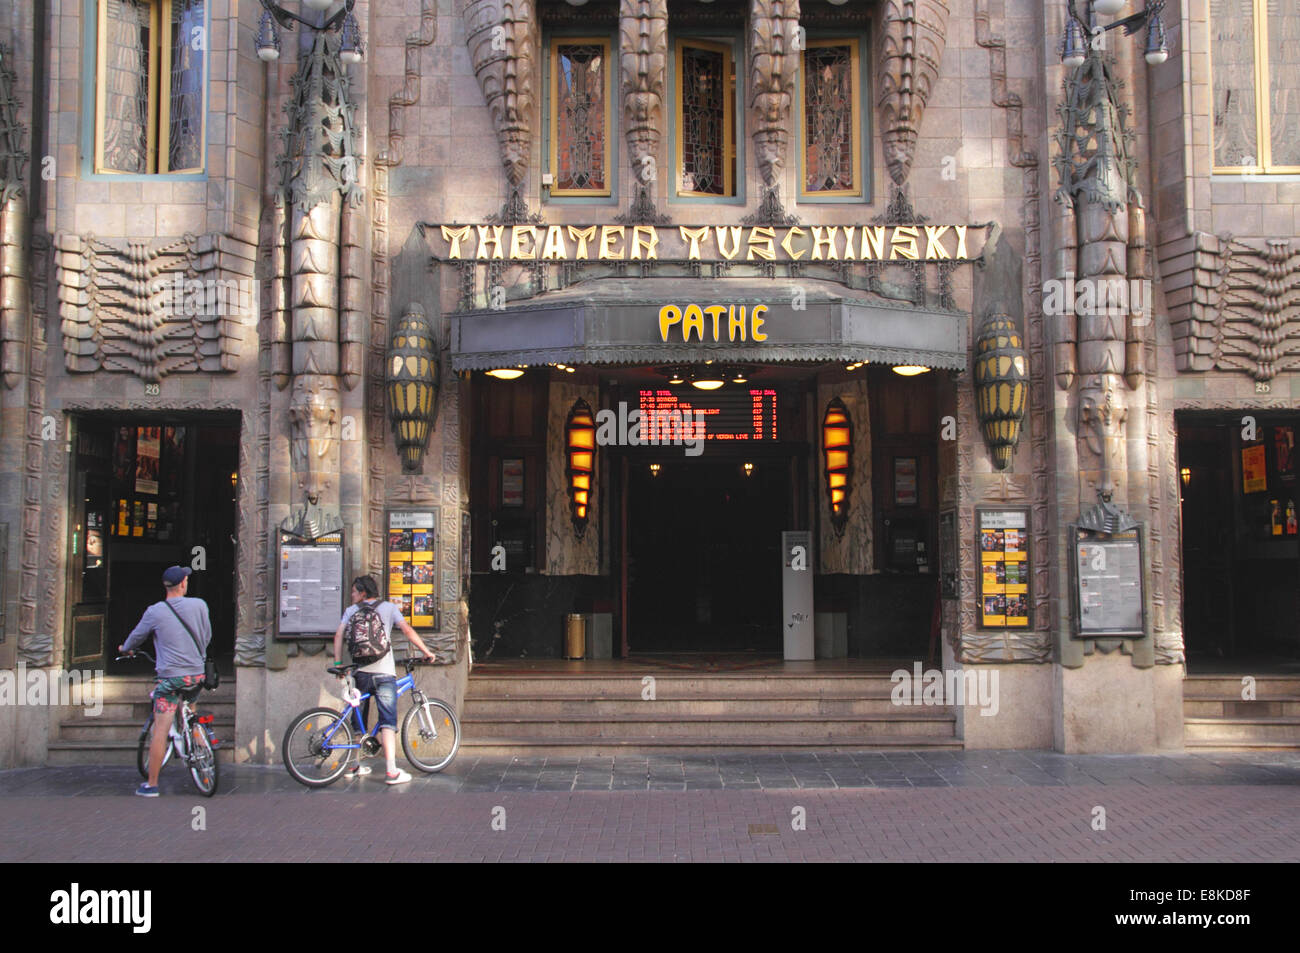 Theater Tuschinski Pathe Reguliersbreestr Amsterdam Holland - Stock Image